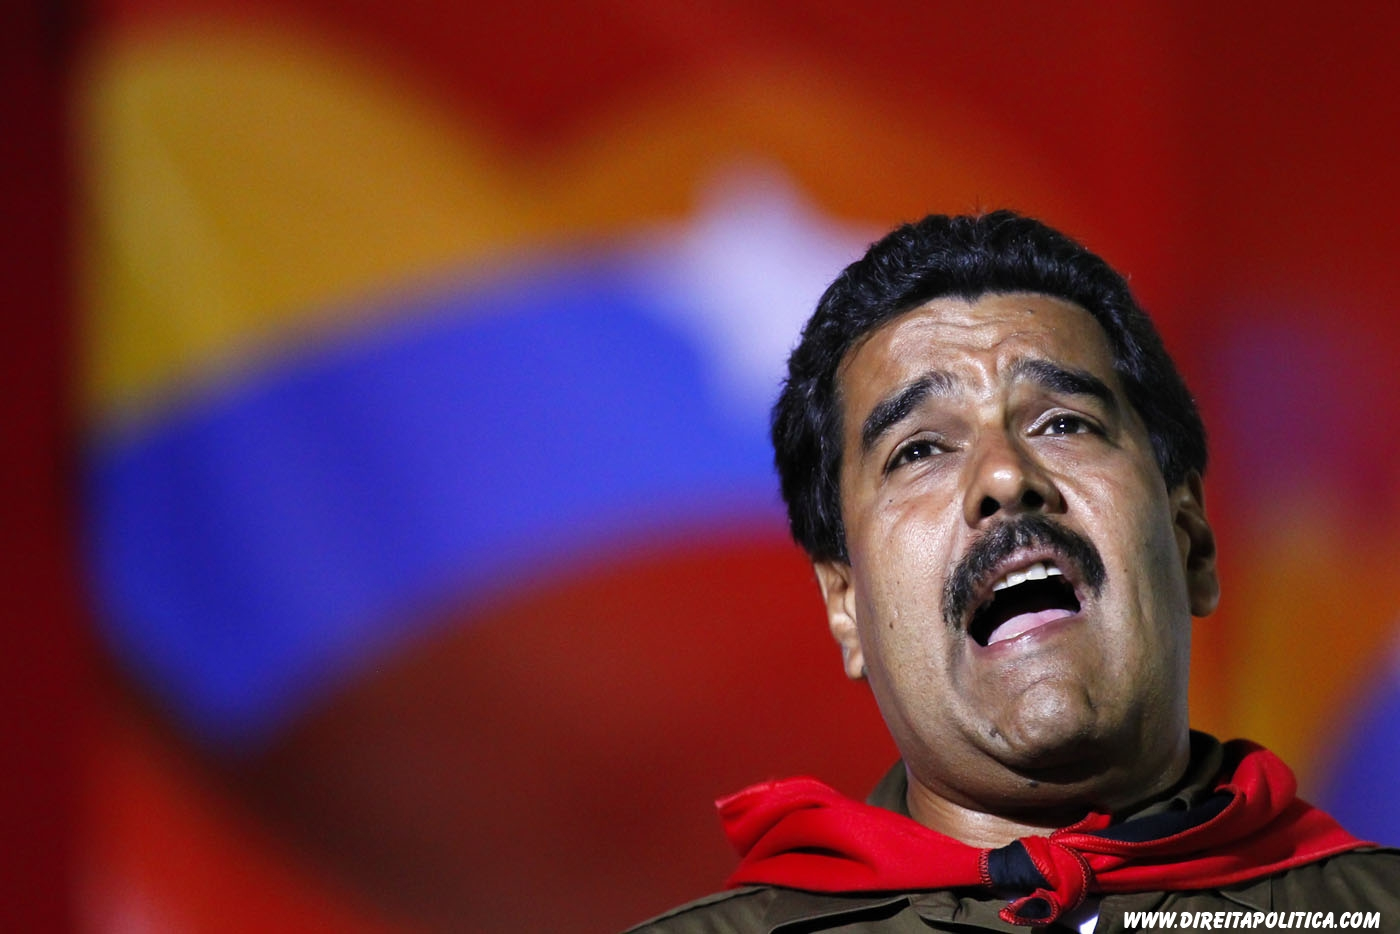 Venezuela's acting President and presidential candidate Nicolas Maduro sings during a campaign rally in Caracas April 5, 2013. Maduro said on Friday that Venezuelan authorities have arrested several people suspected of plotting to sabotage one of his campaign rallies before an April 14 election by cutting the power. REUTERS/Carlos Garcia Rawlins (VENEZUELA - Tags: POLITICS ELECTIONS)